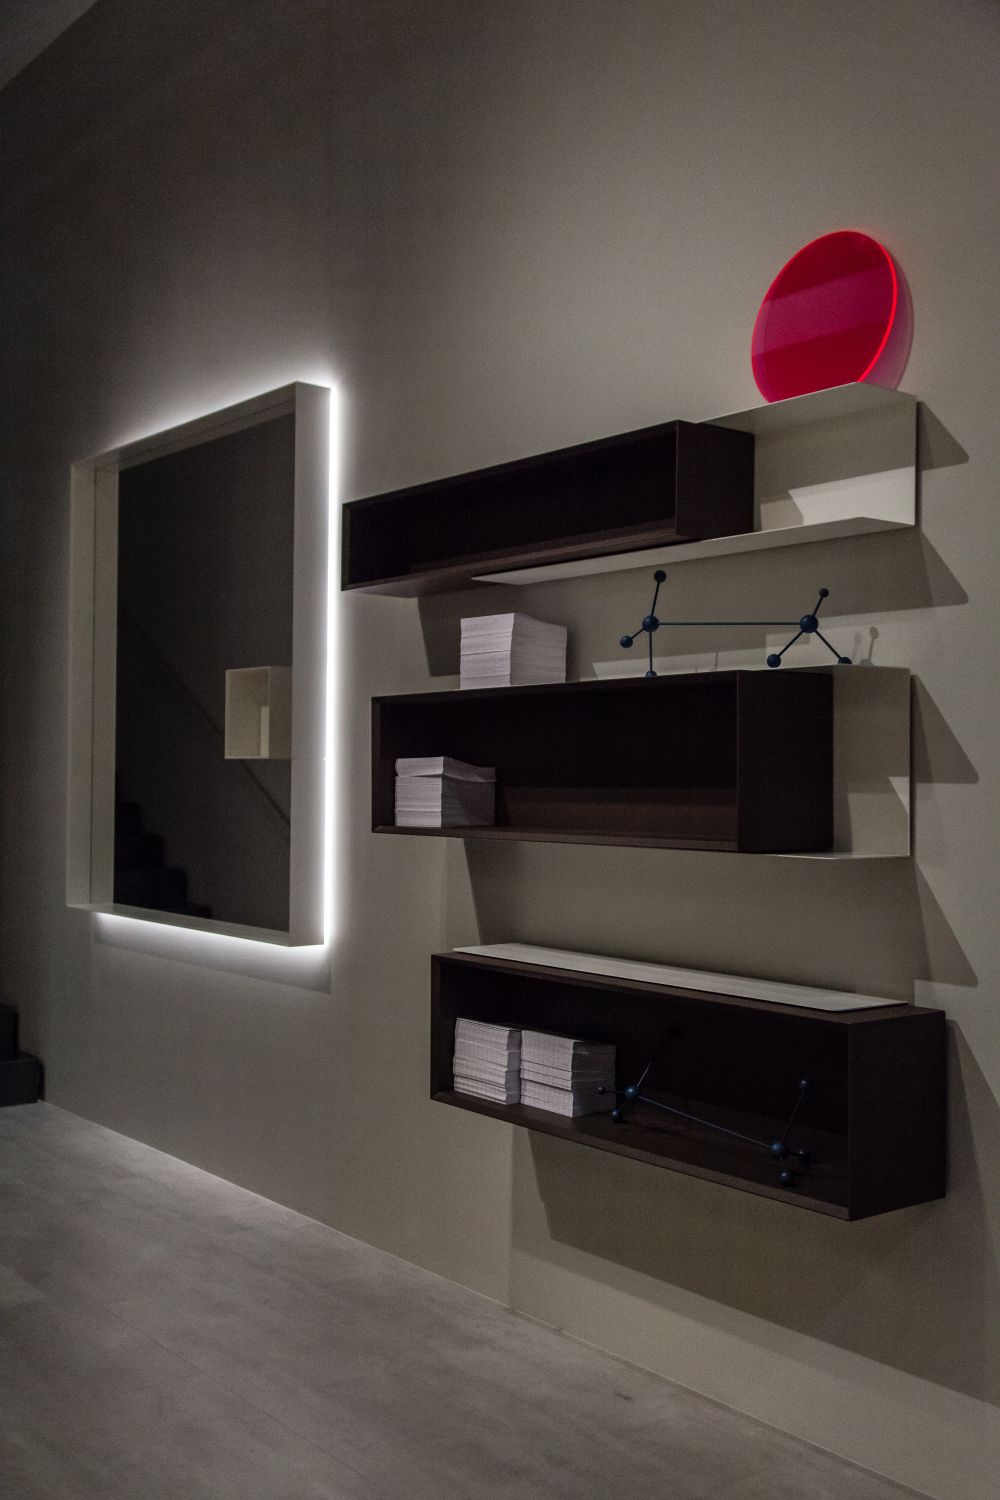 wall furniture shelves. Box-style Shelves Like These Ones Are Great Because They Look Neat And Provide Wall Furniture I